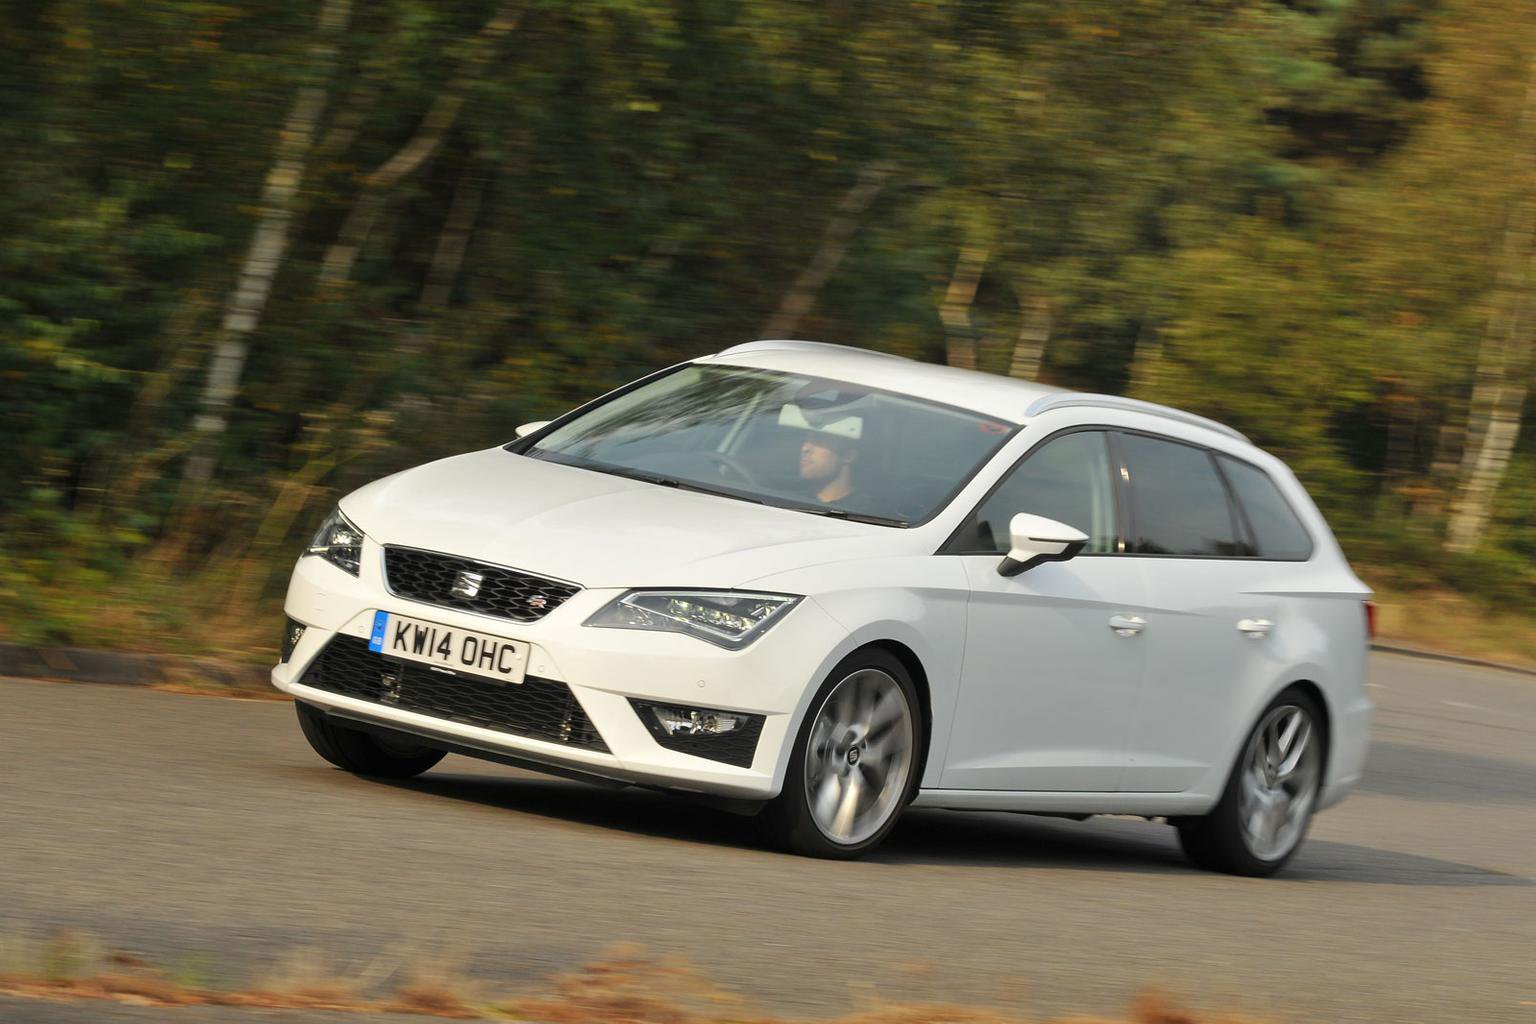 2014 Seat Leon ST 1.4 TSI 150 ACT review